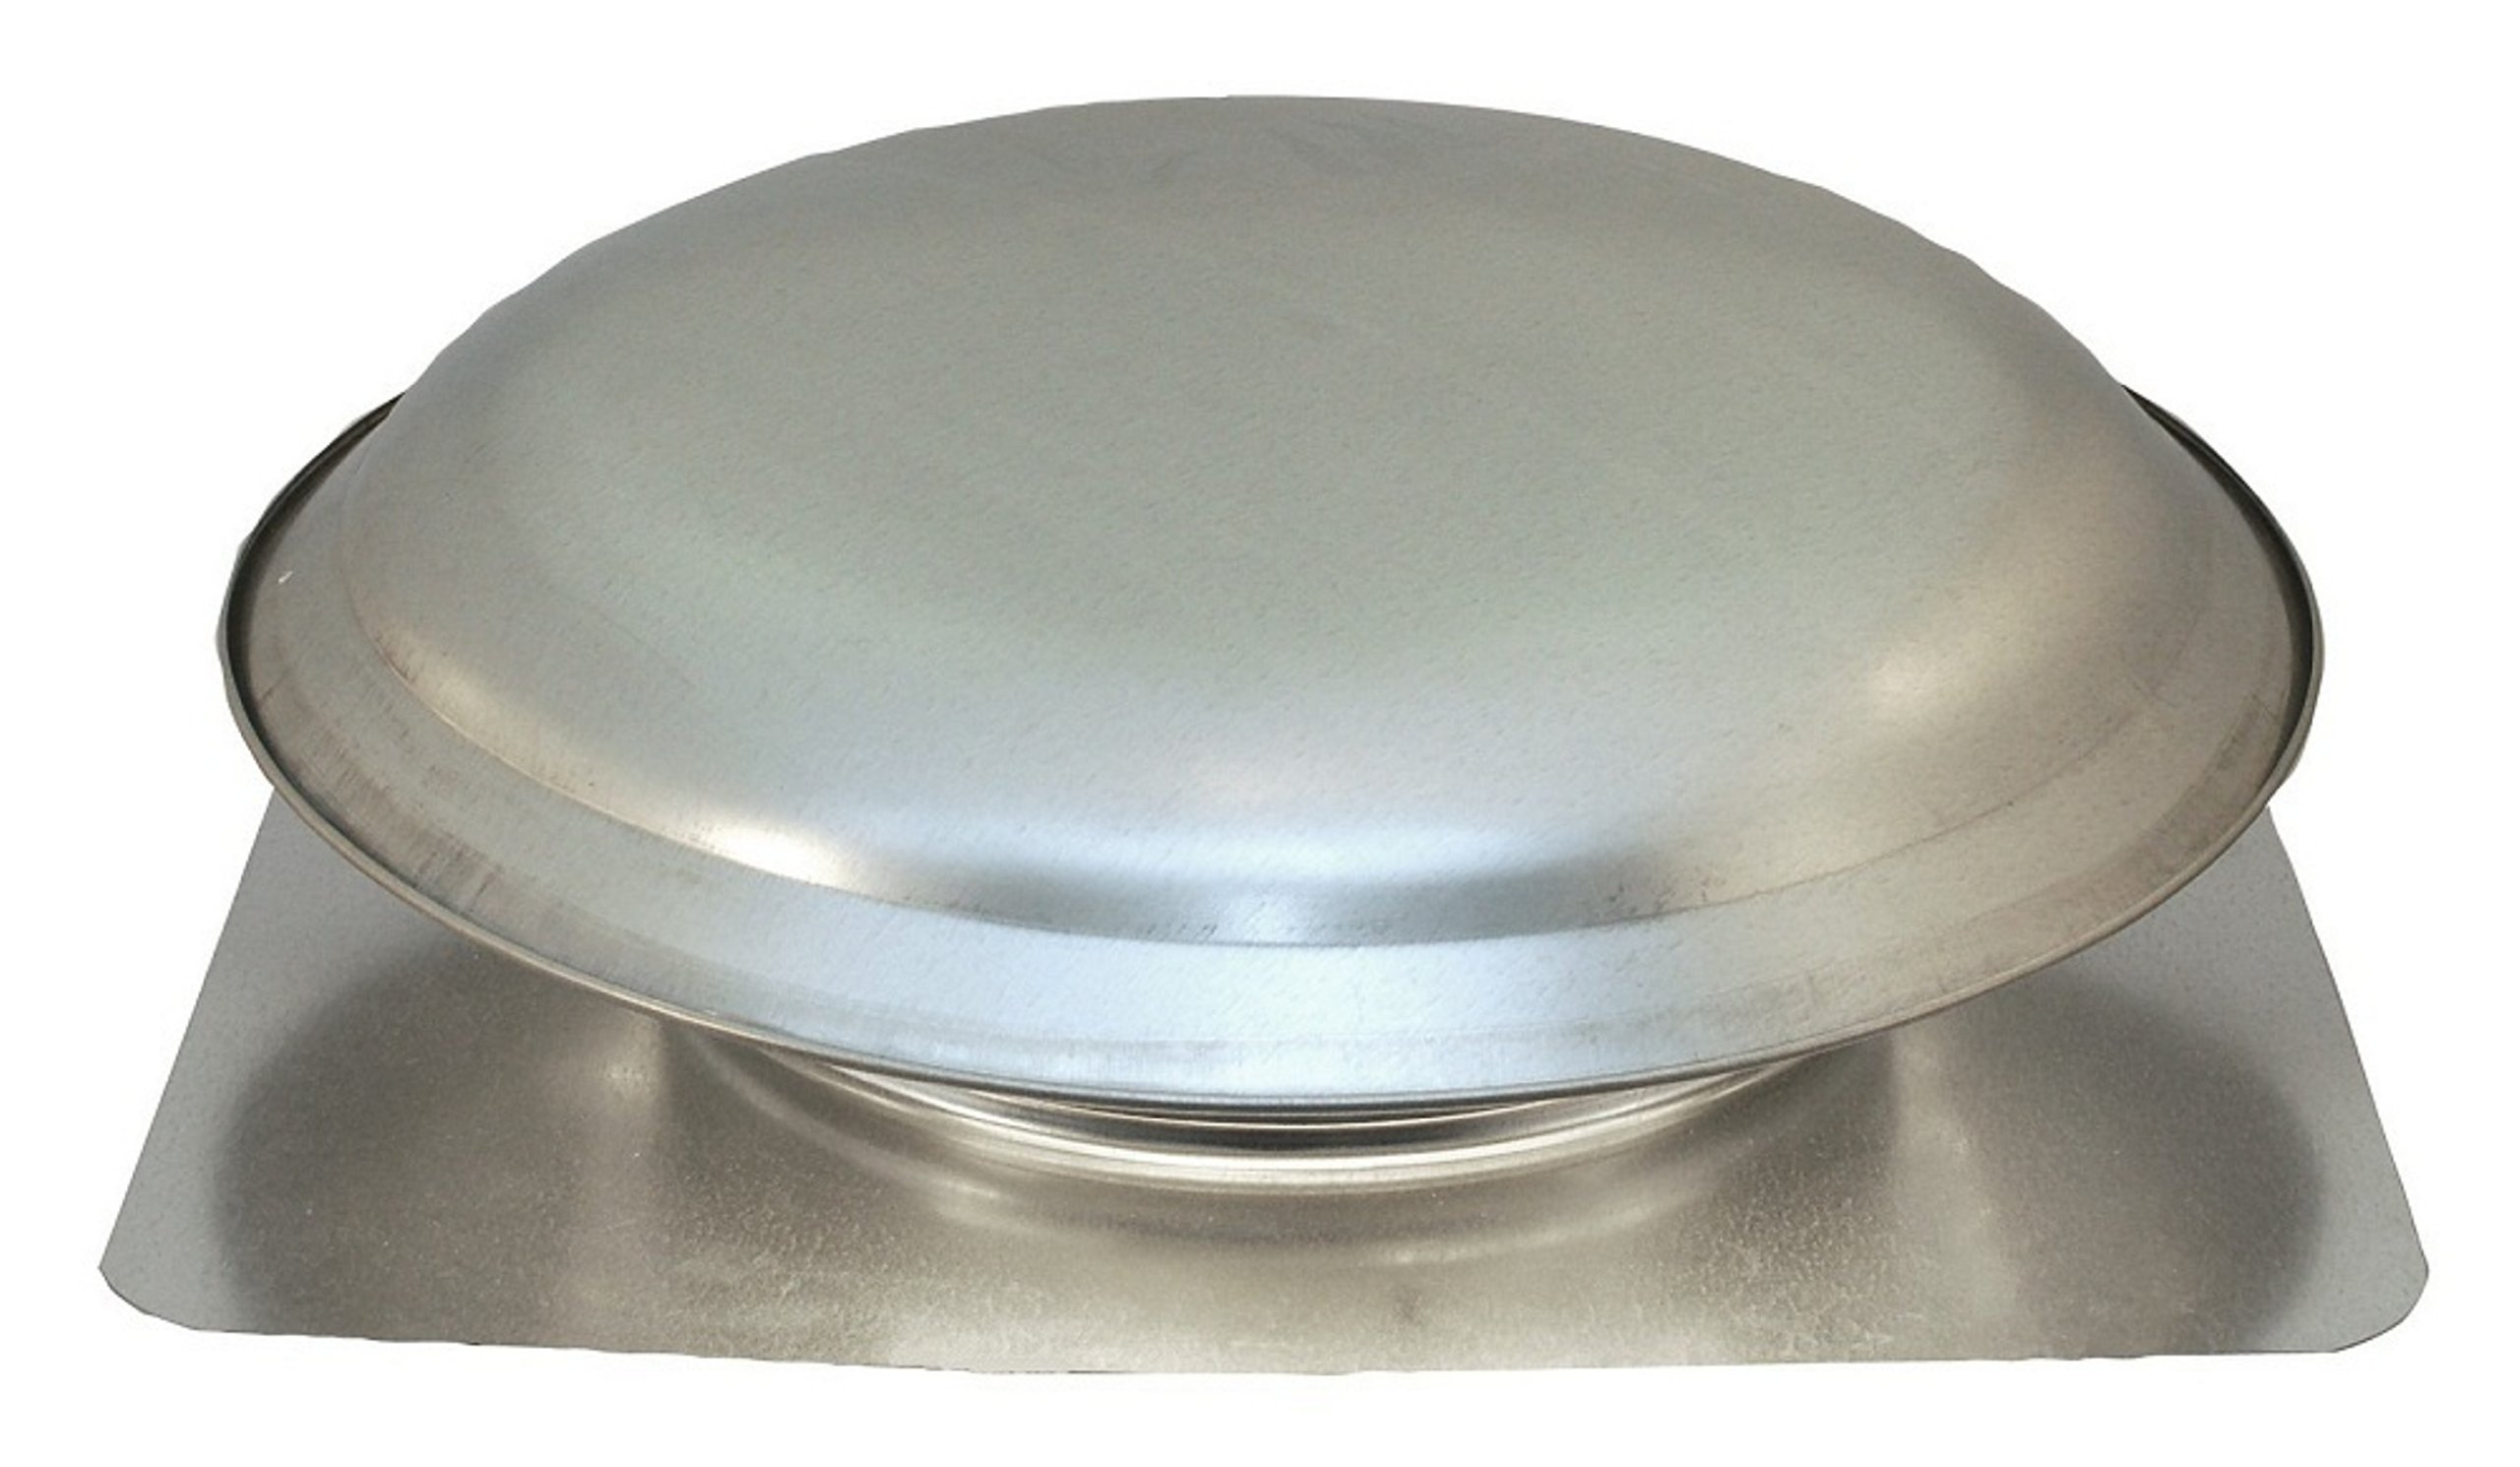 Cool Attic CX4000AM Power Roof Galvanized Steel Vent Dome with 5.1 Amp PSC Motor, Mill